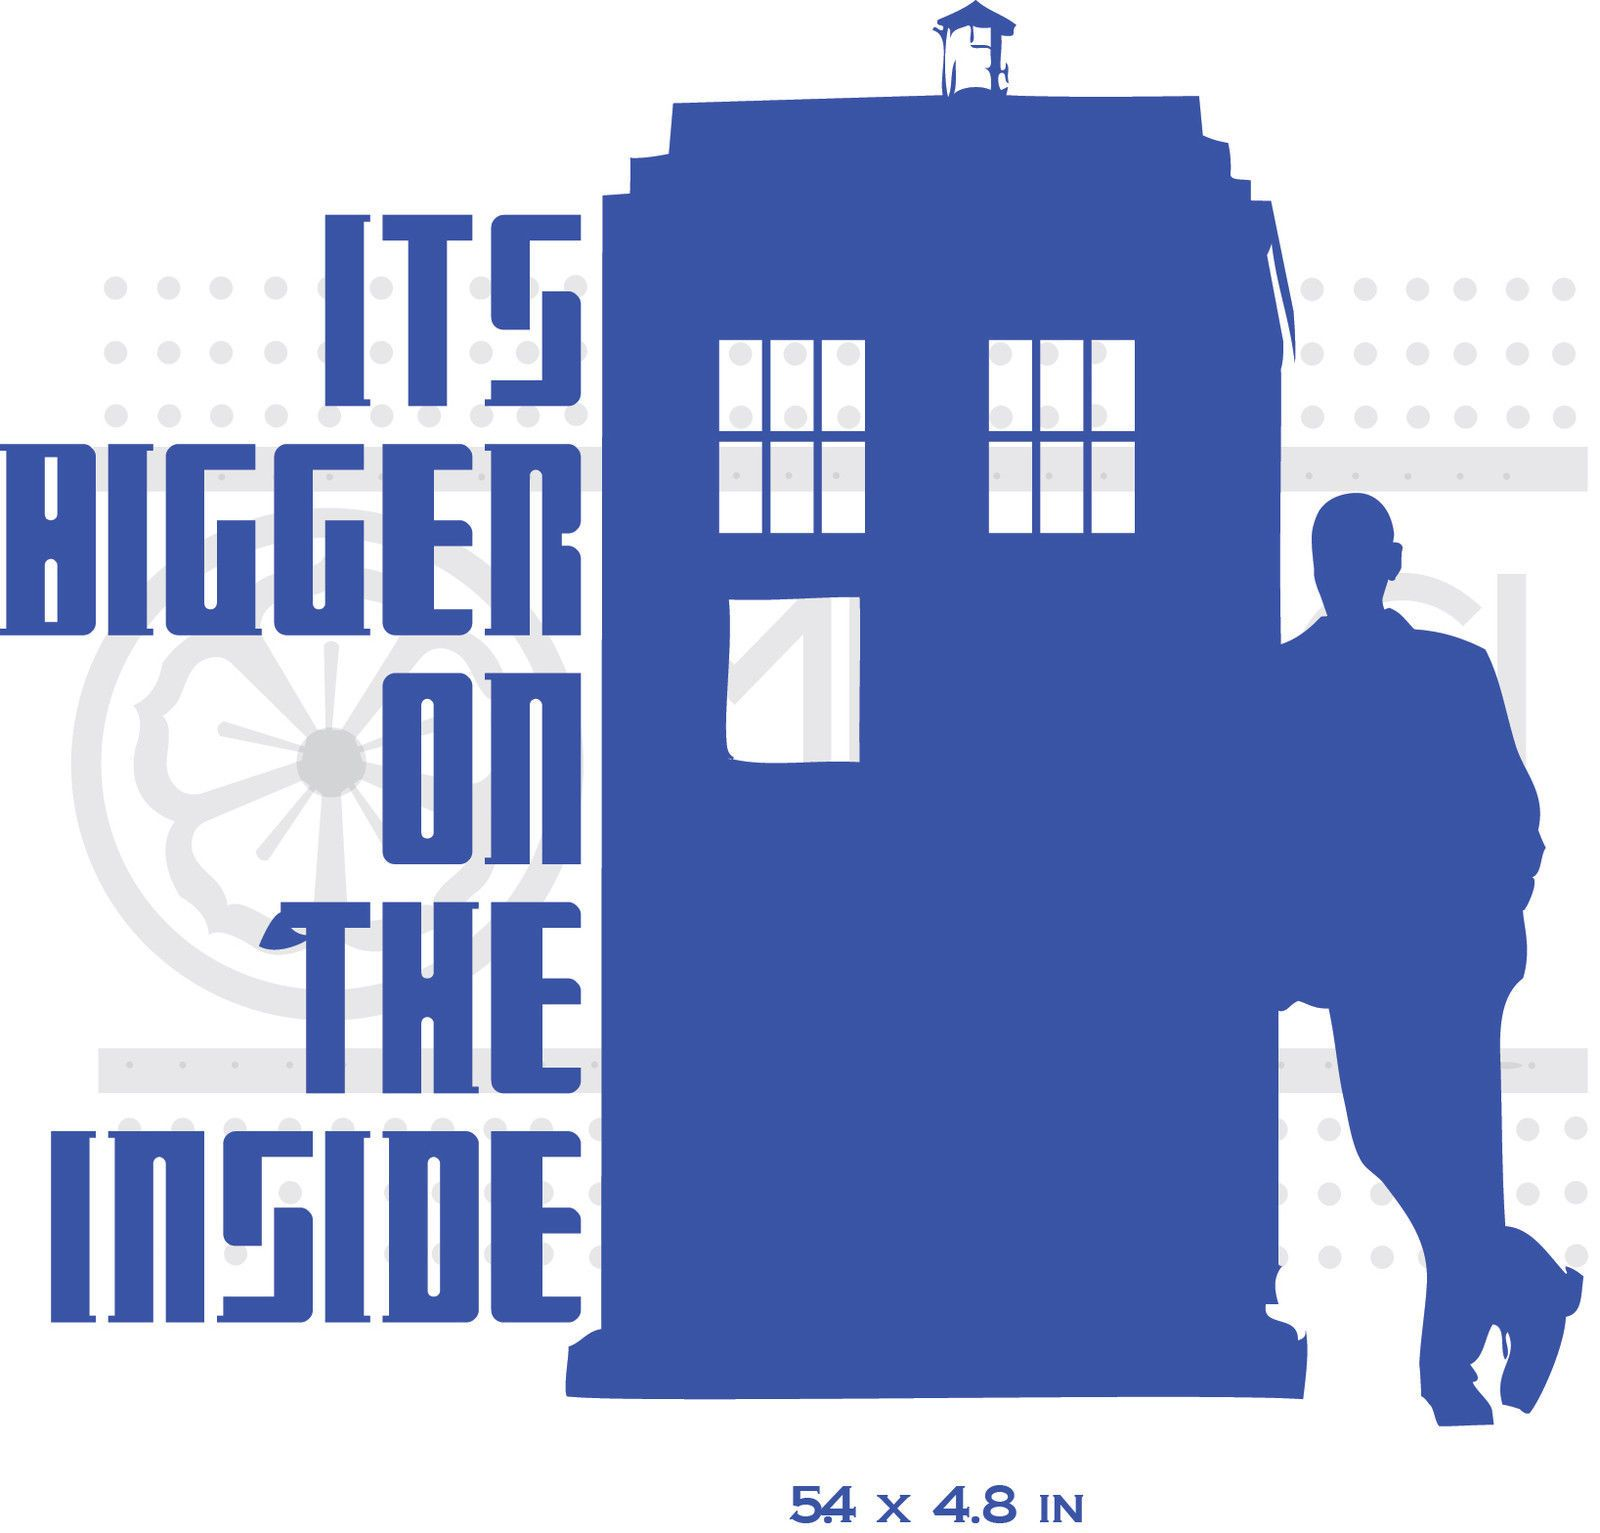 good looking doctor who tardis door decal. Dr Who Tardis Its Bigger on The Inside Funny RARE Vinyl Decal Sticker  eBay